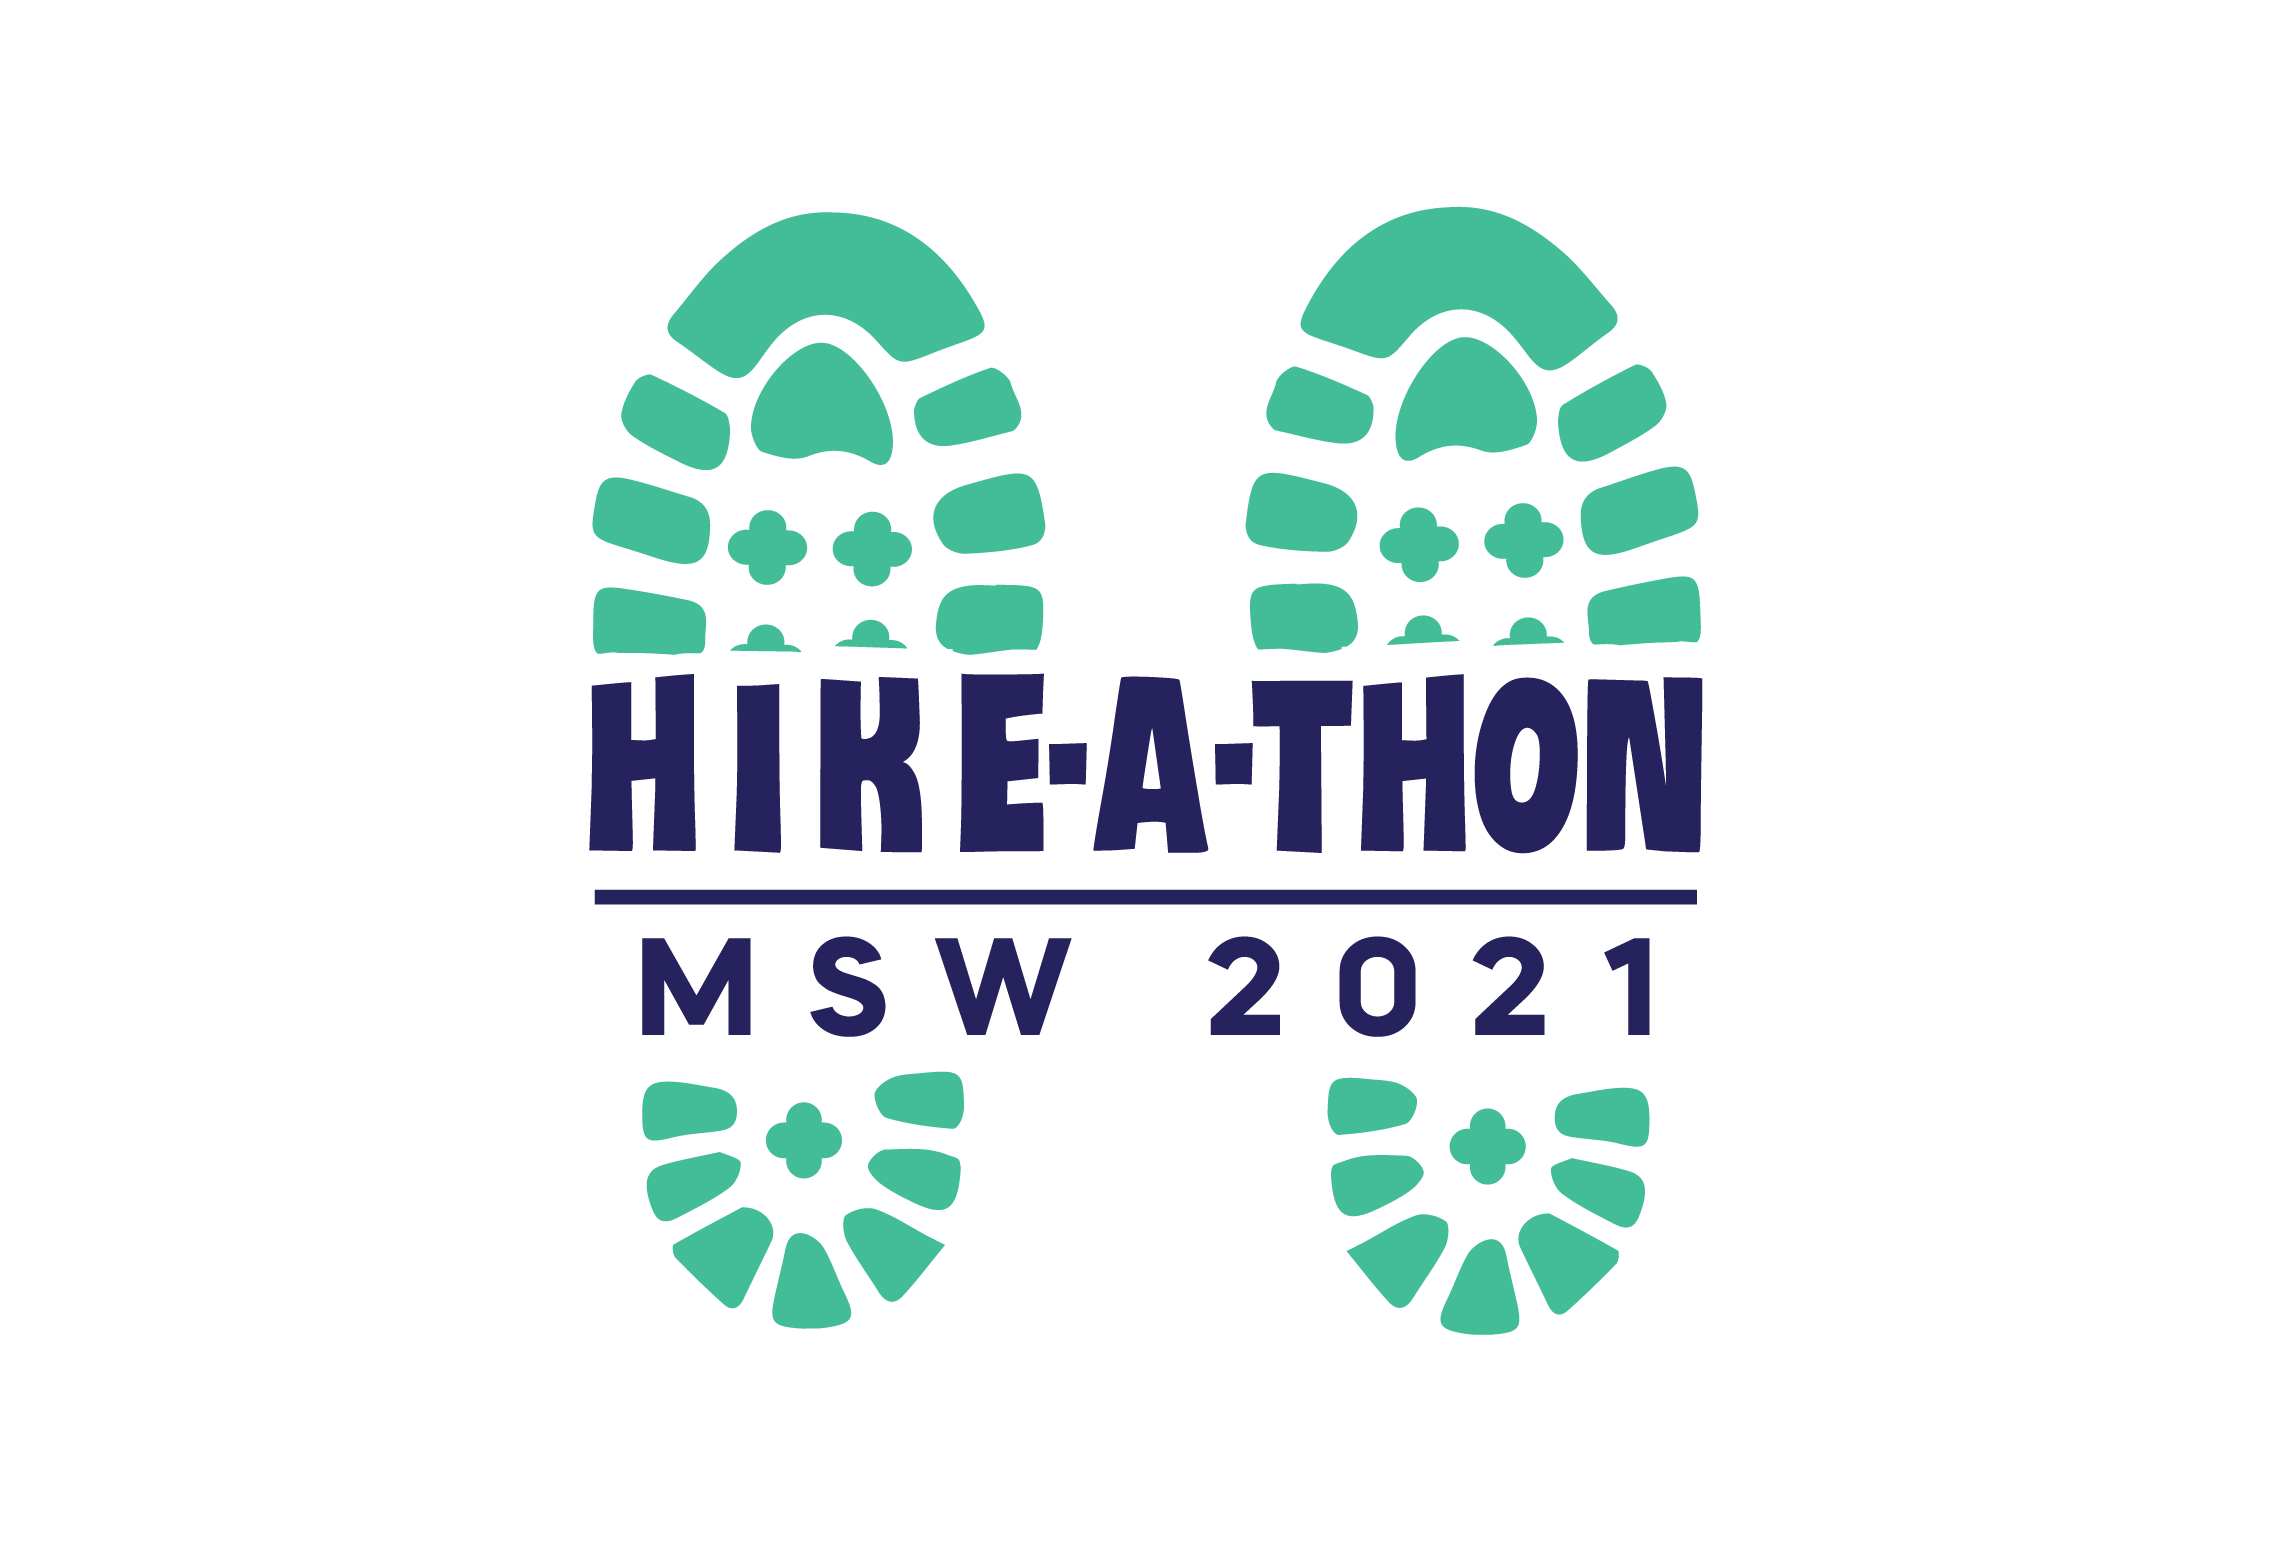 Hike-a-thon 2021.png